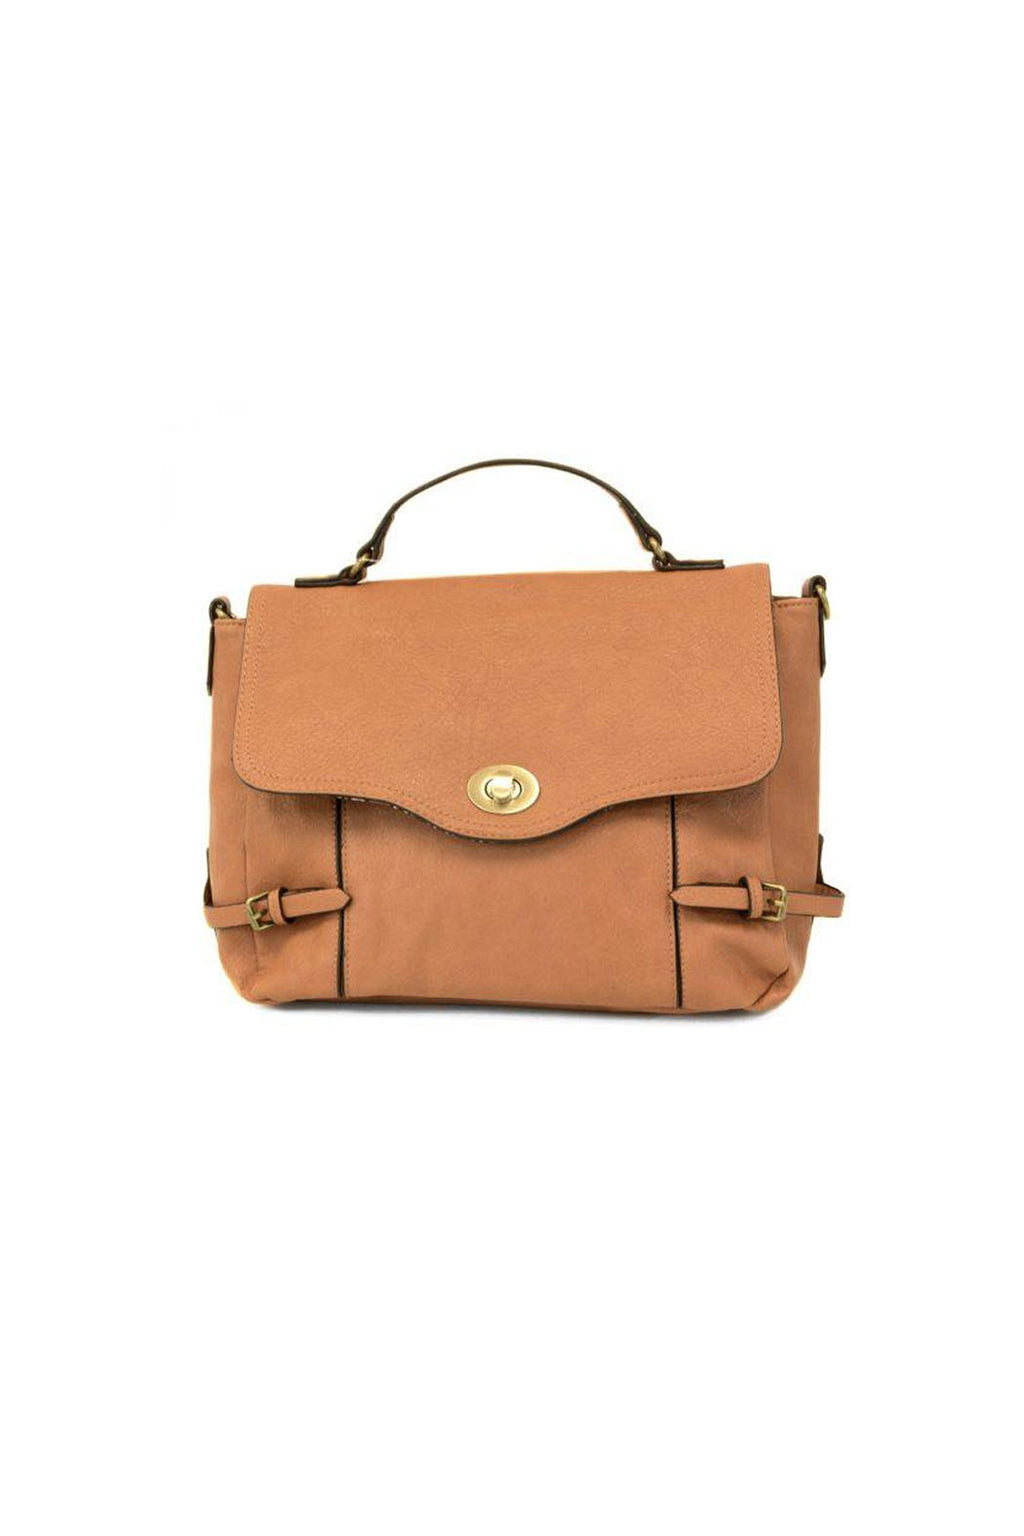 Abigail Convertible Satchel in Bourbon